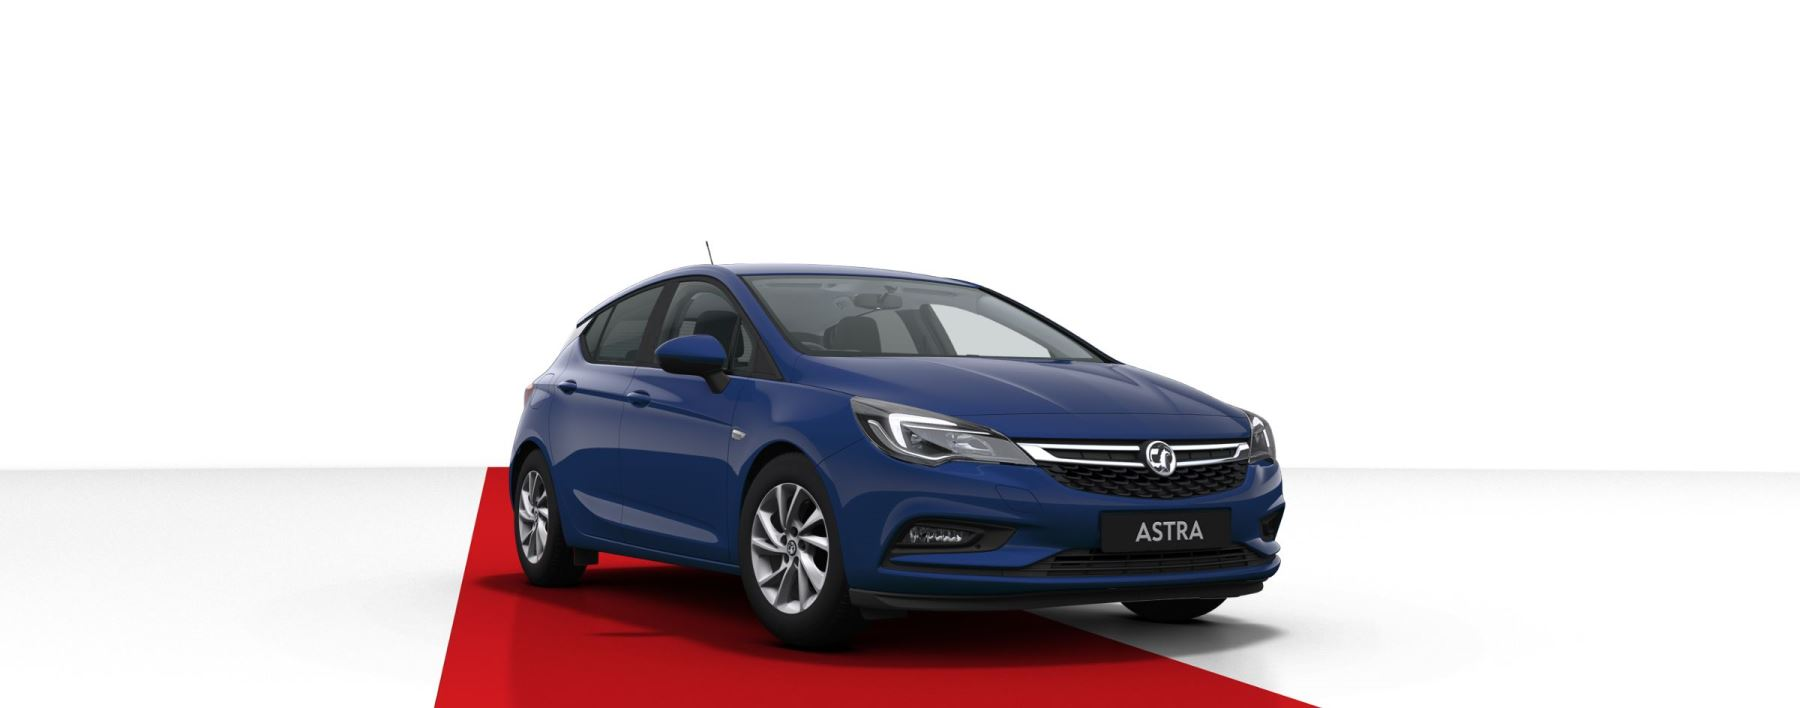 Vauxhall Astra DESIGN 1.4i 125PS Turbo